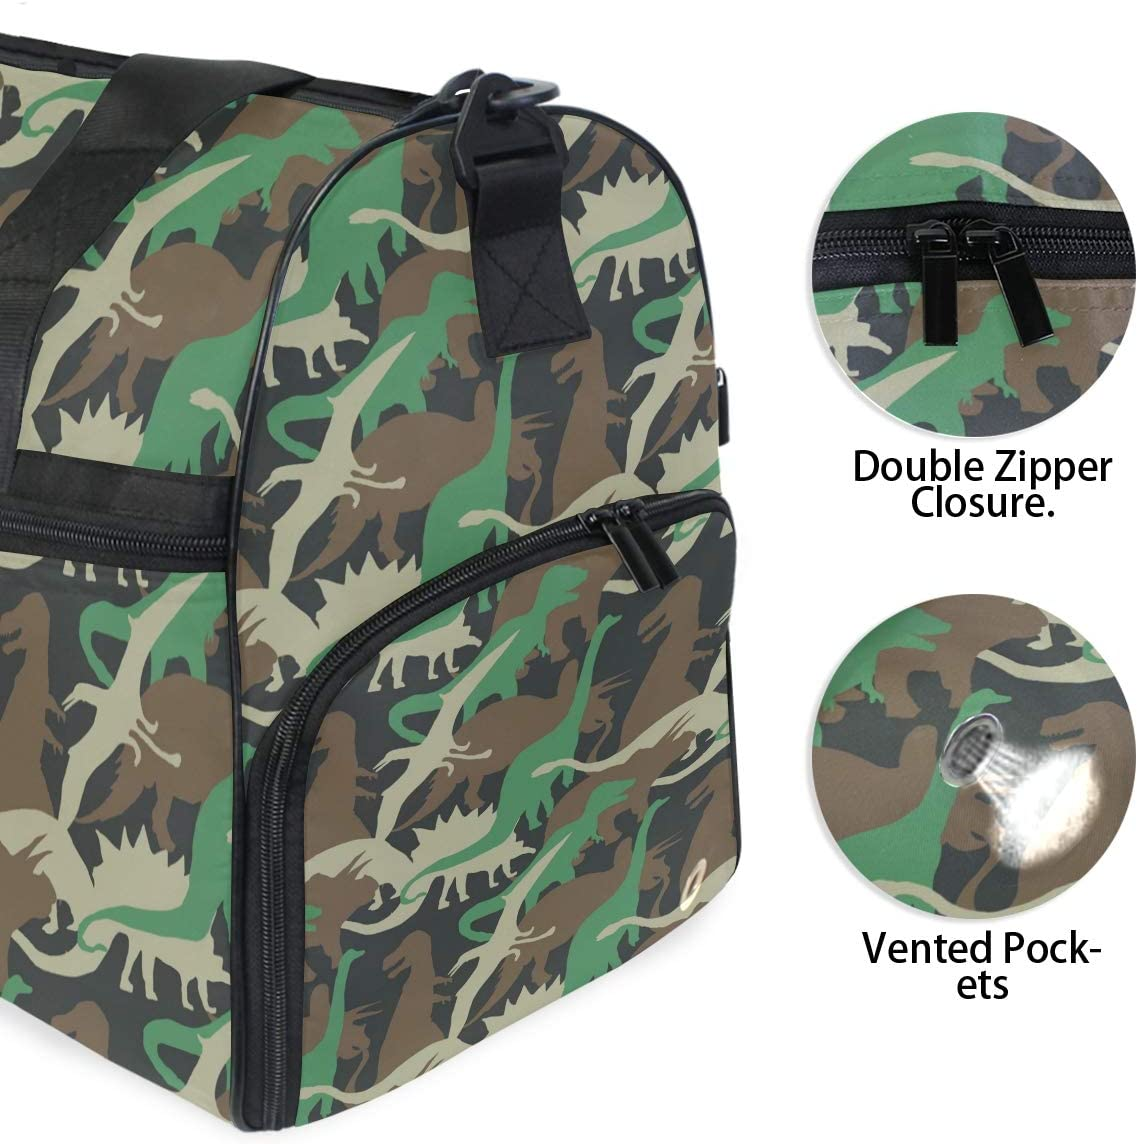 ALAZA Vintage Dinosaur Camo Camouflage Sports Gym Duffel Bag Travel Luggage Handbag Shoulder Bag with Shoes Compartment for Men Women